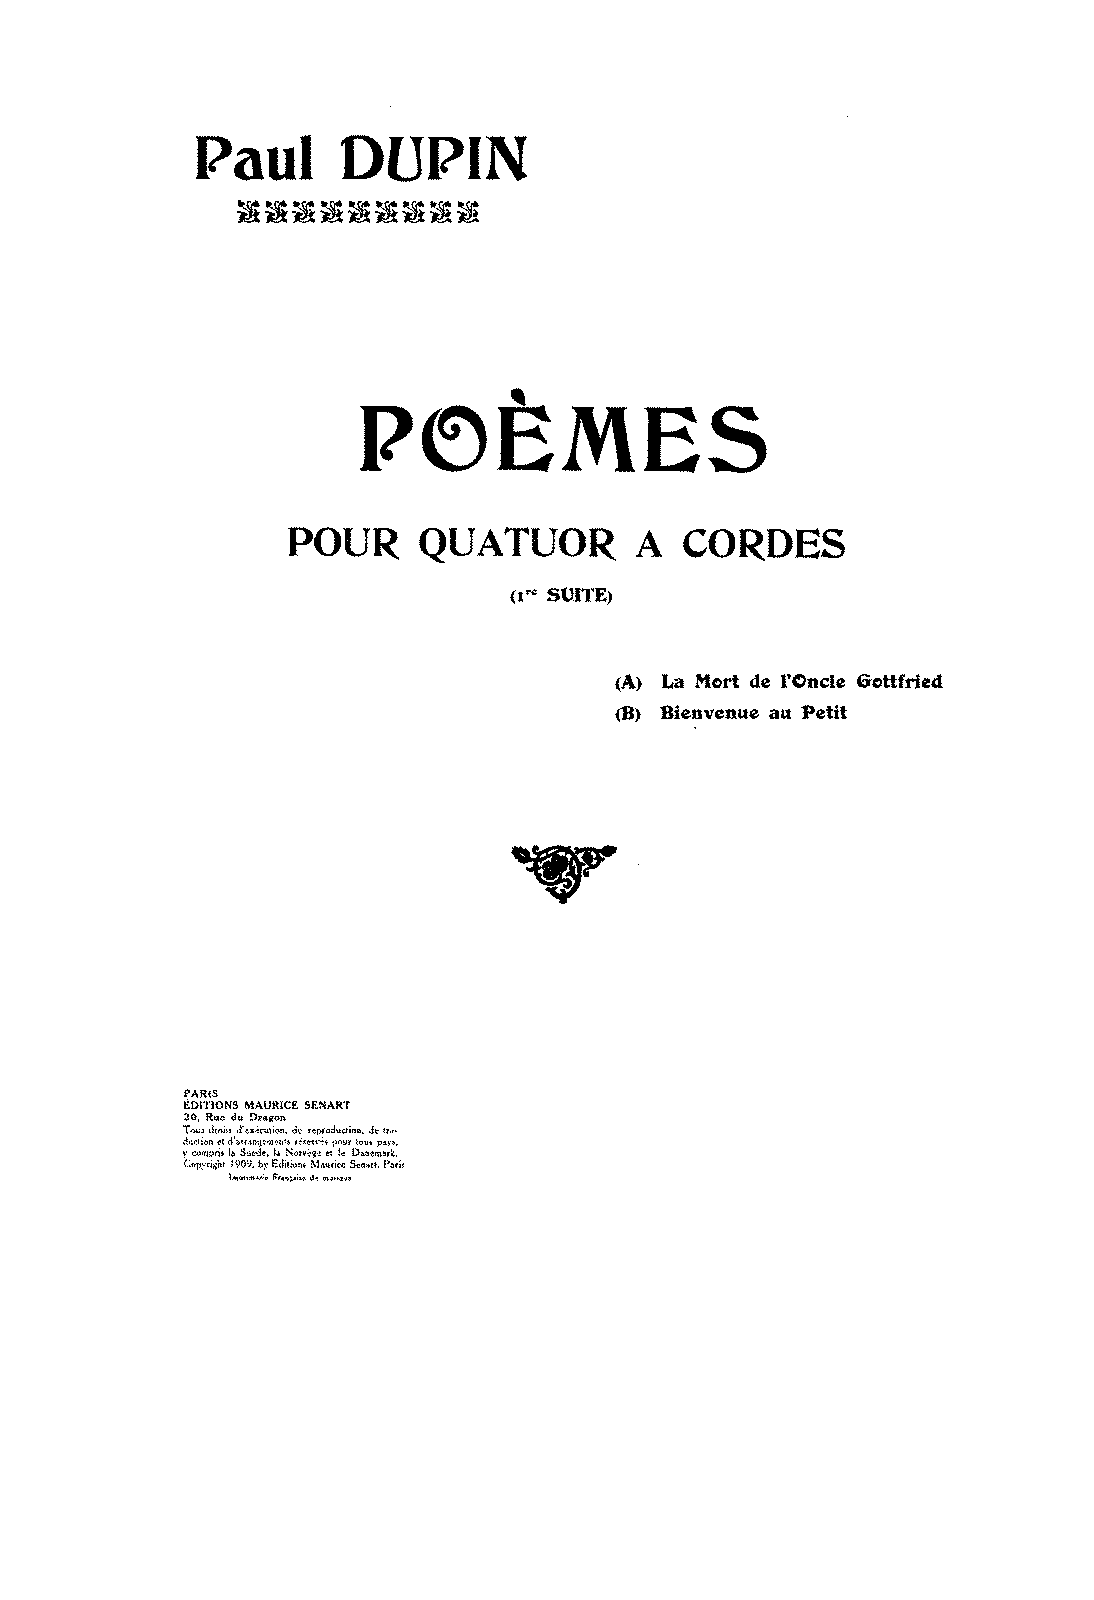 Poèmes for String Quartet, Suite 1 (Dupin, Paul) - IMSLP ...